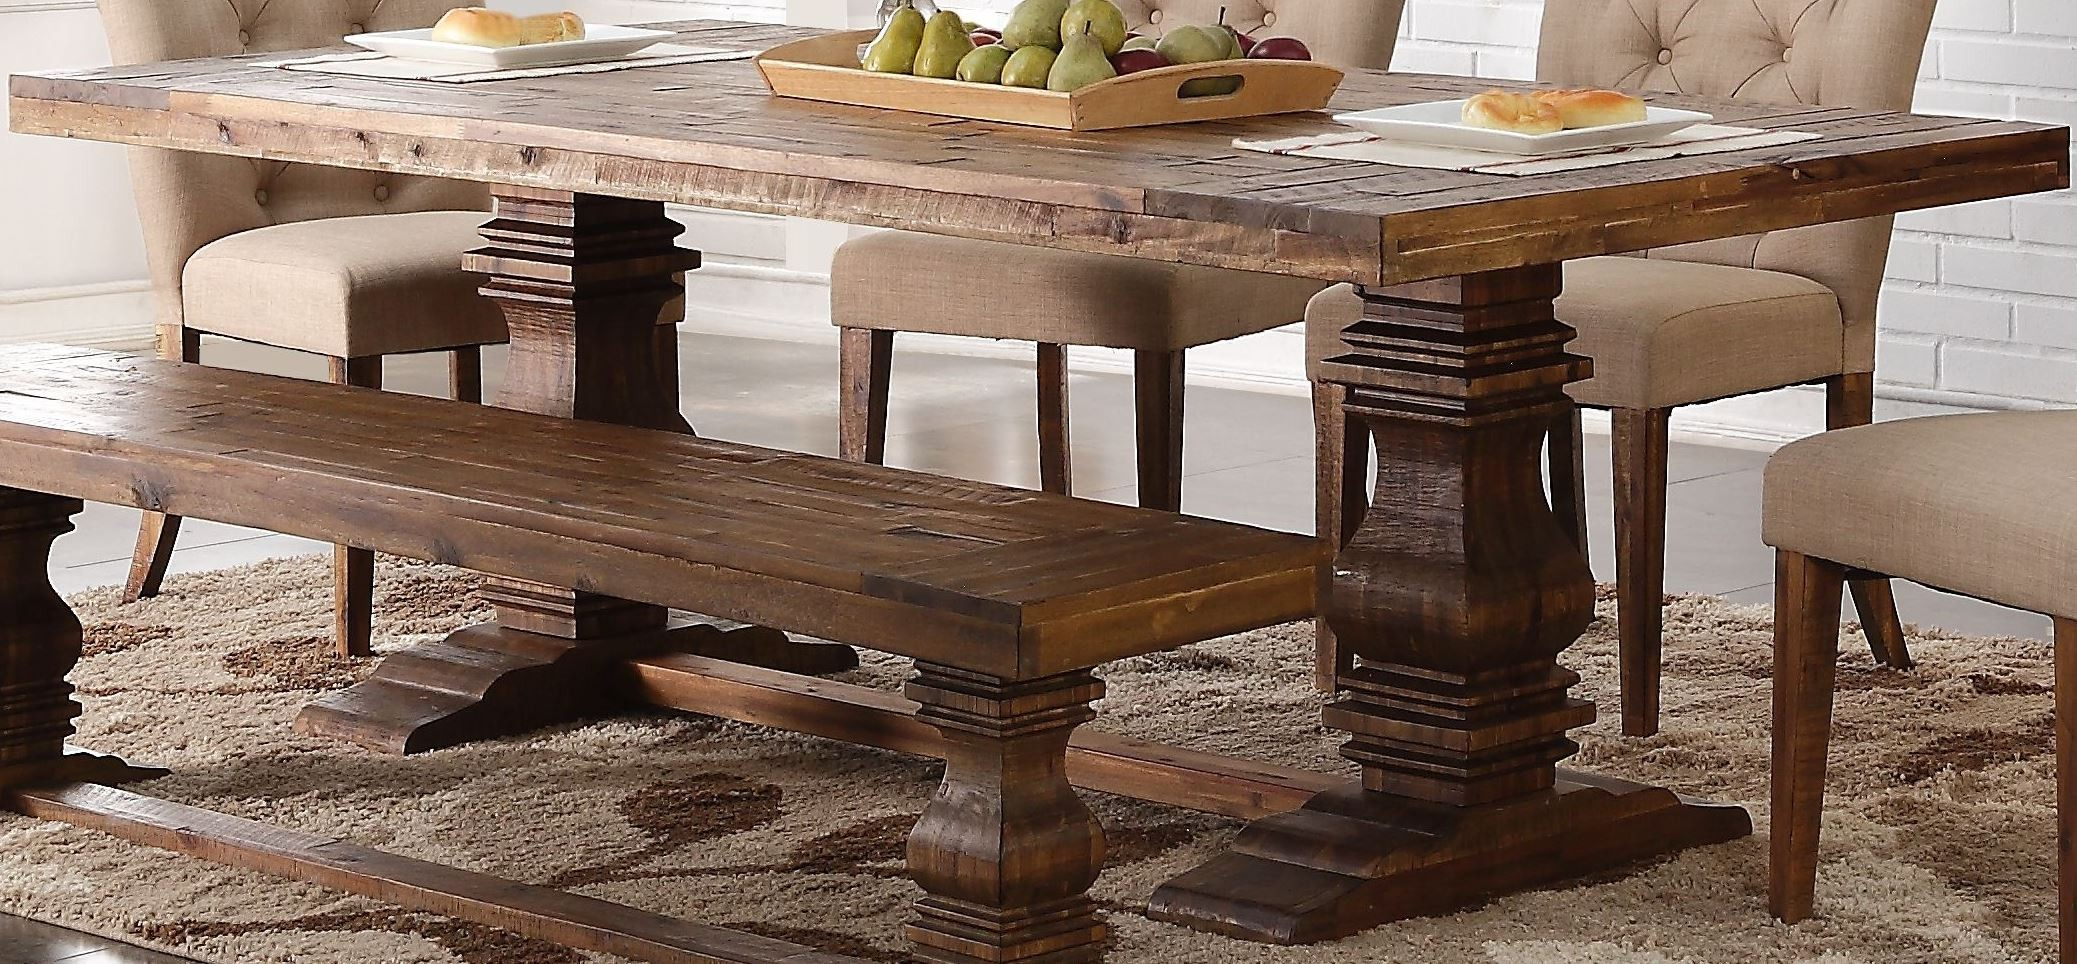 Distressed Dining Table - Normandy vintage distressed dining table